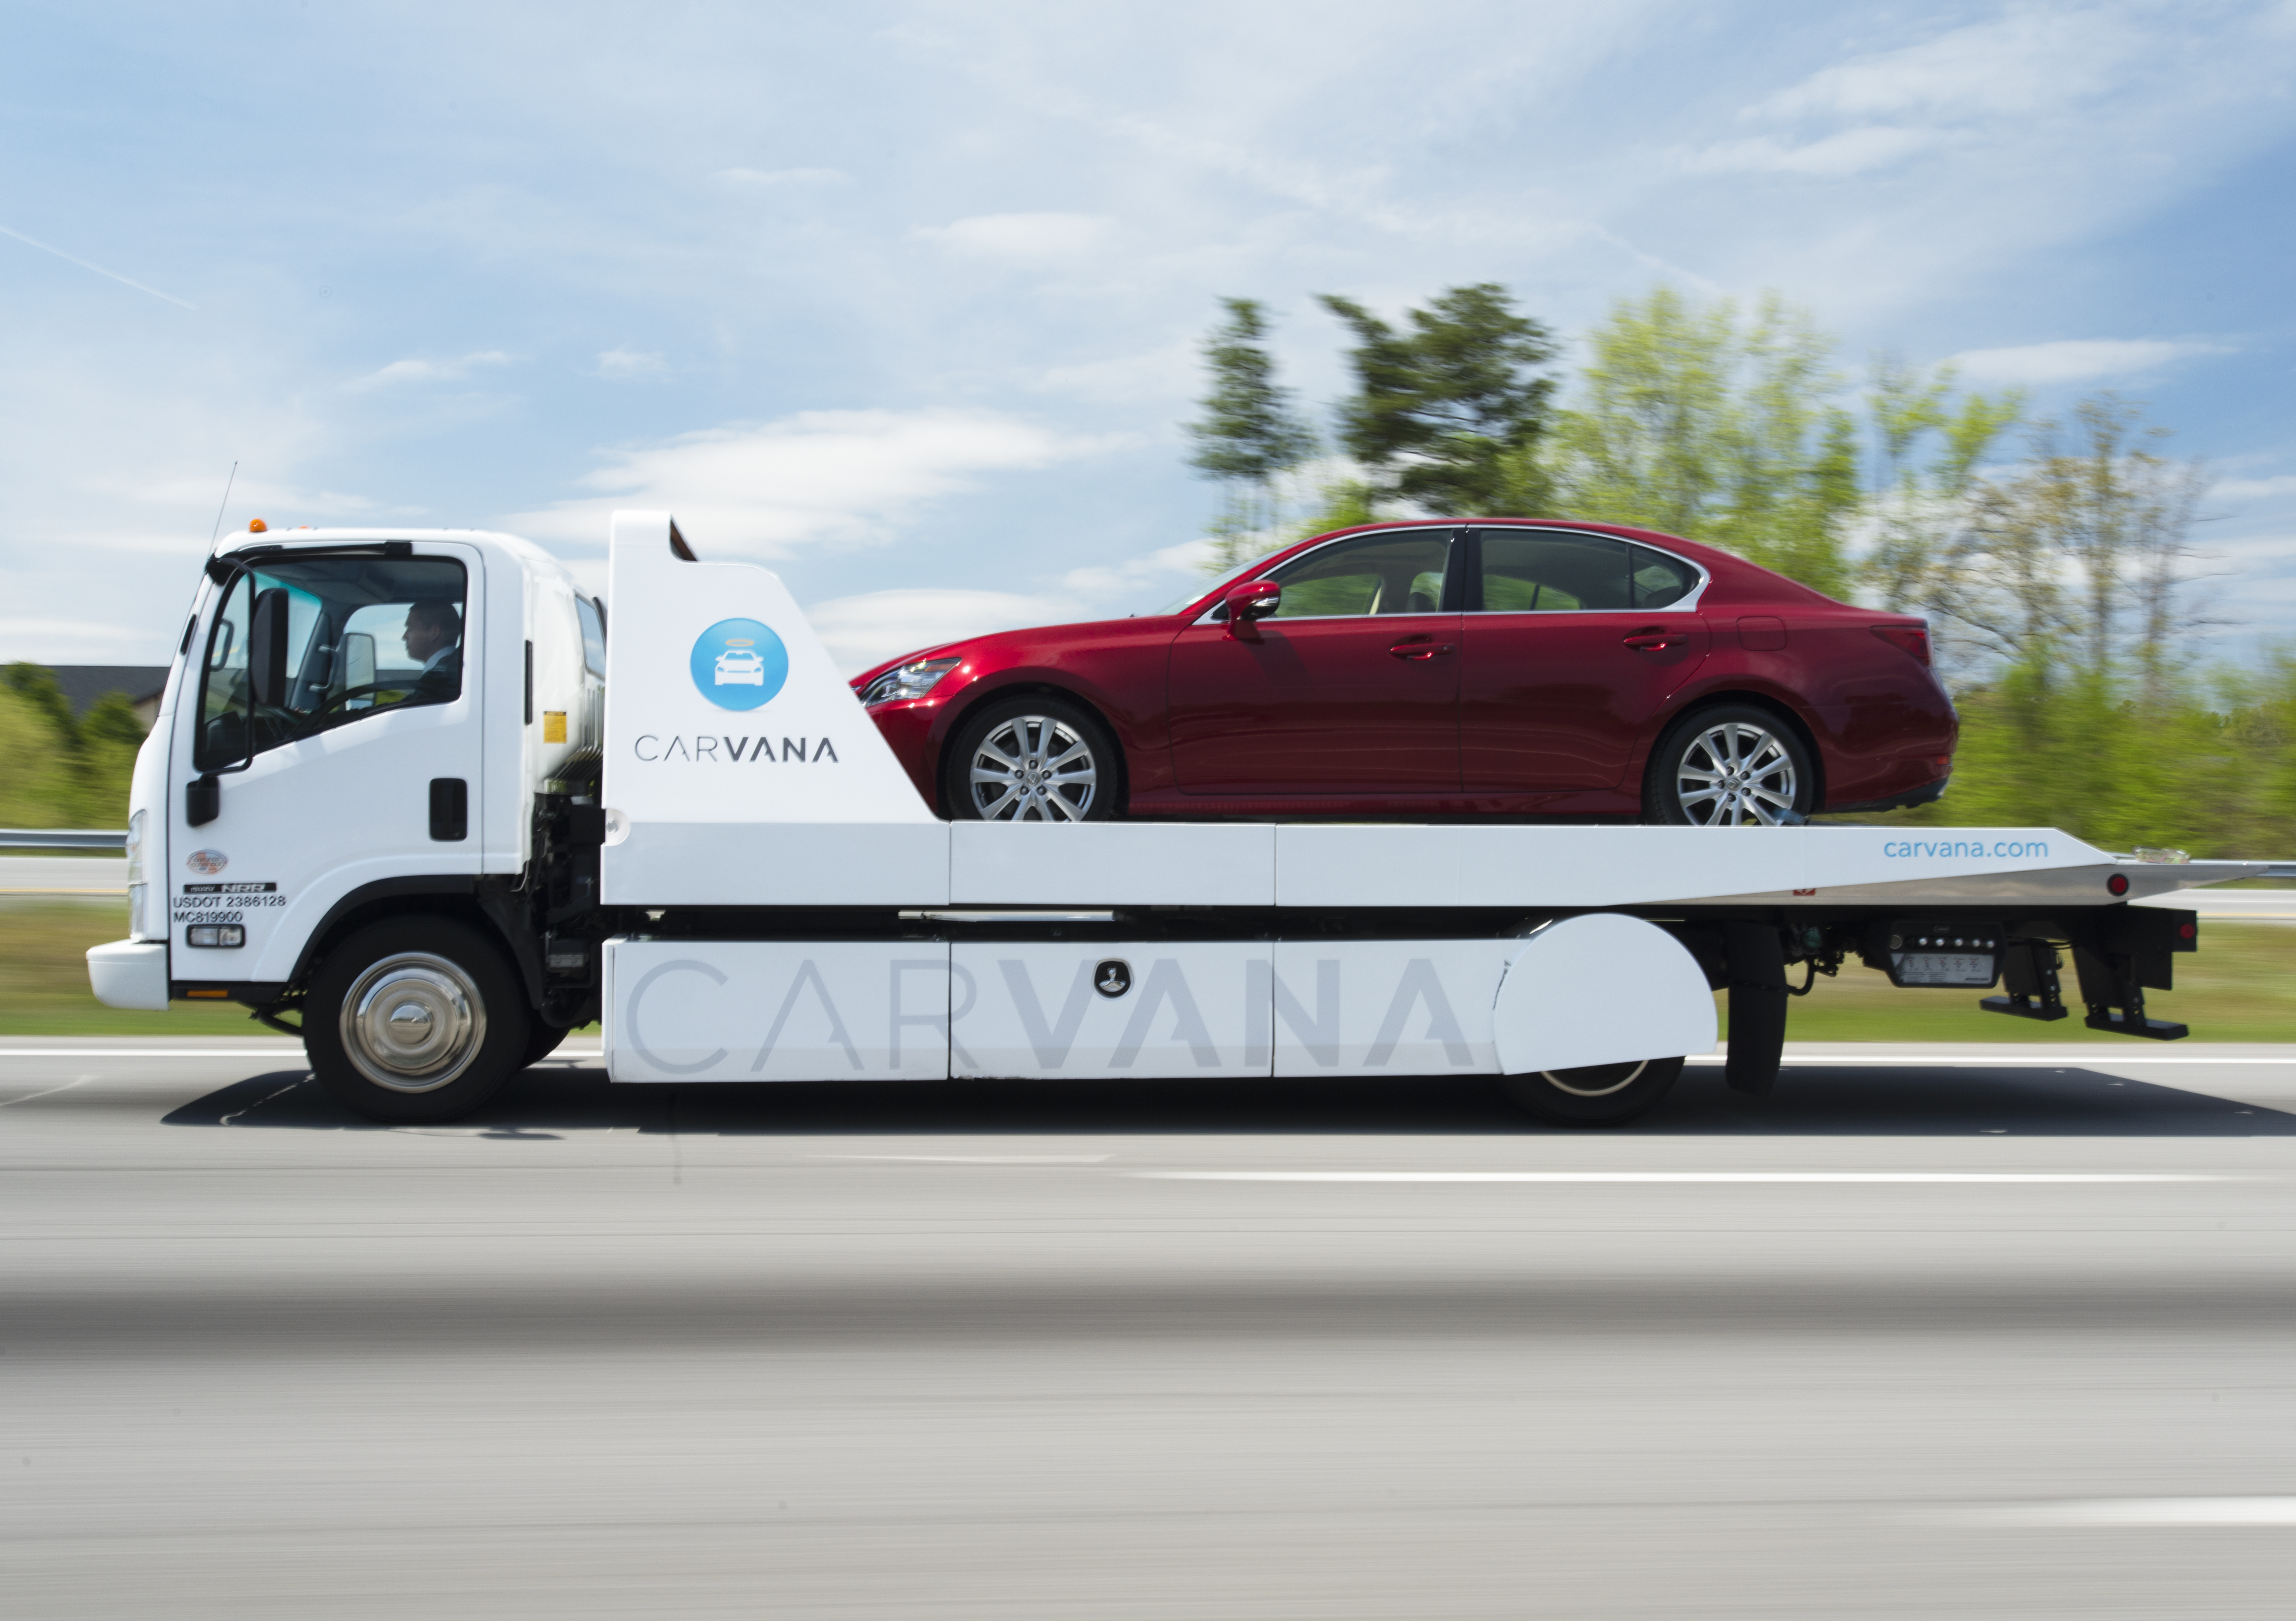 Carvana Launches its Second Arizona Market with Free, As-Soon-As ...